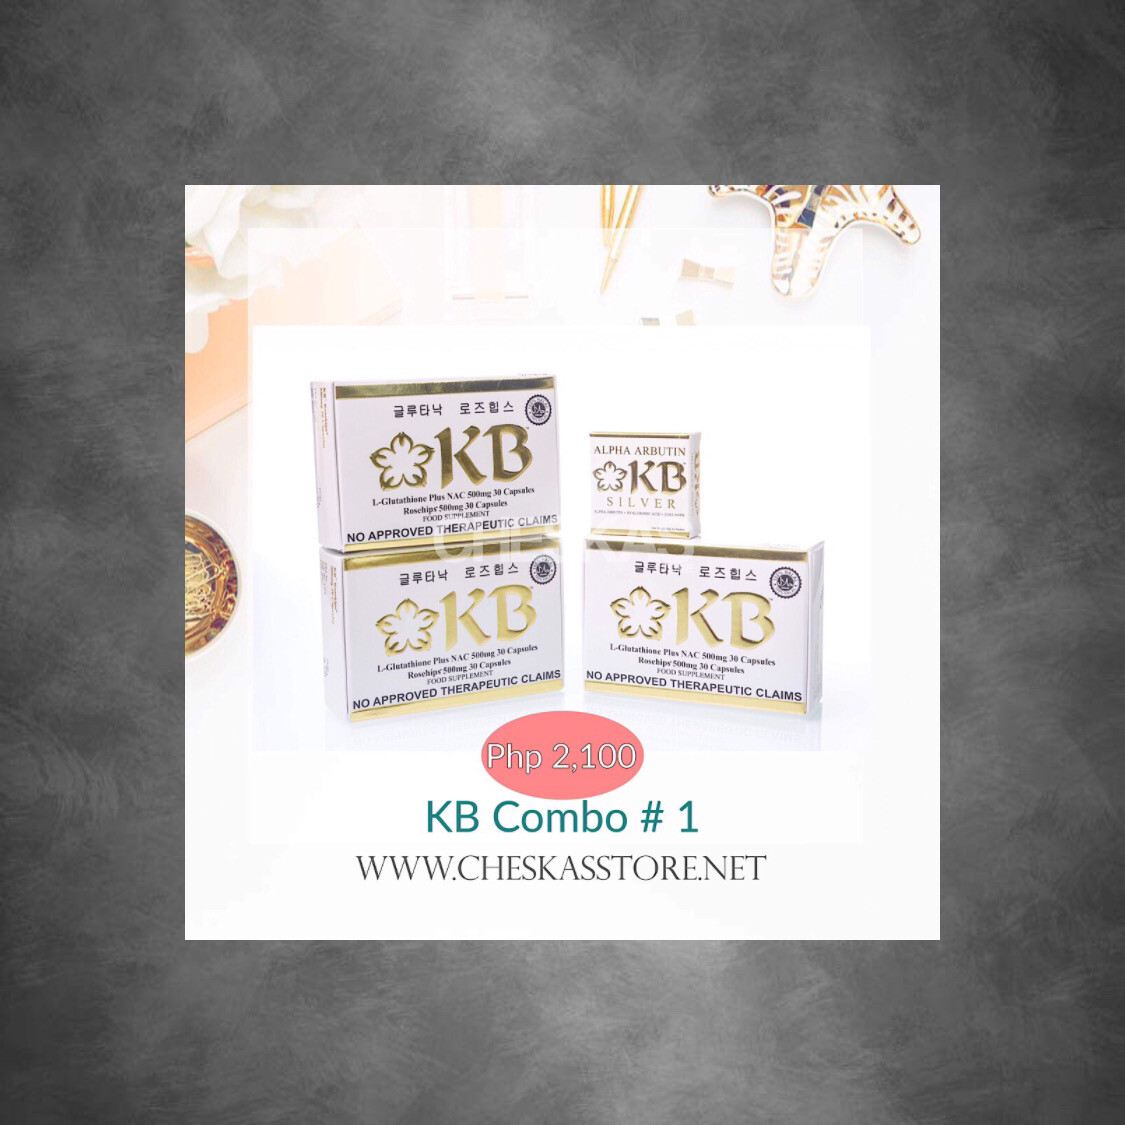 KB Combo # 1 (3 Boxes of KB + 60g KB Silver Soap)